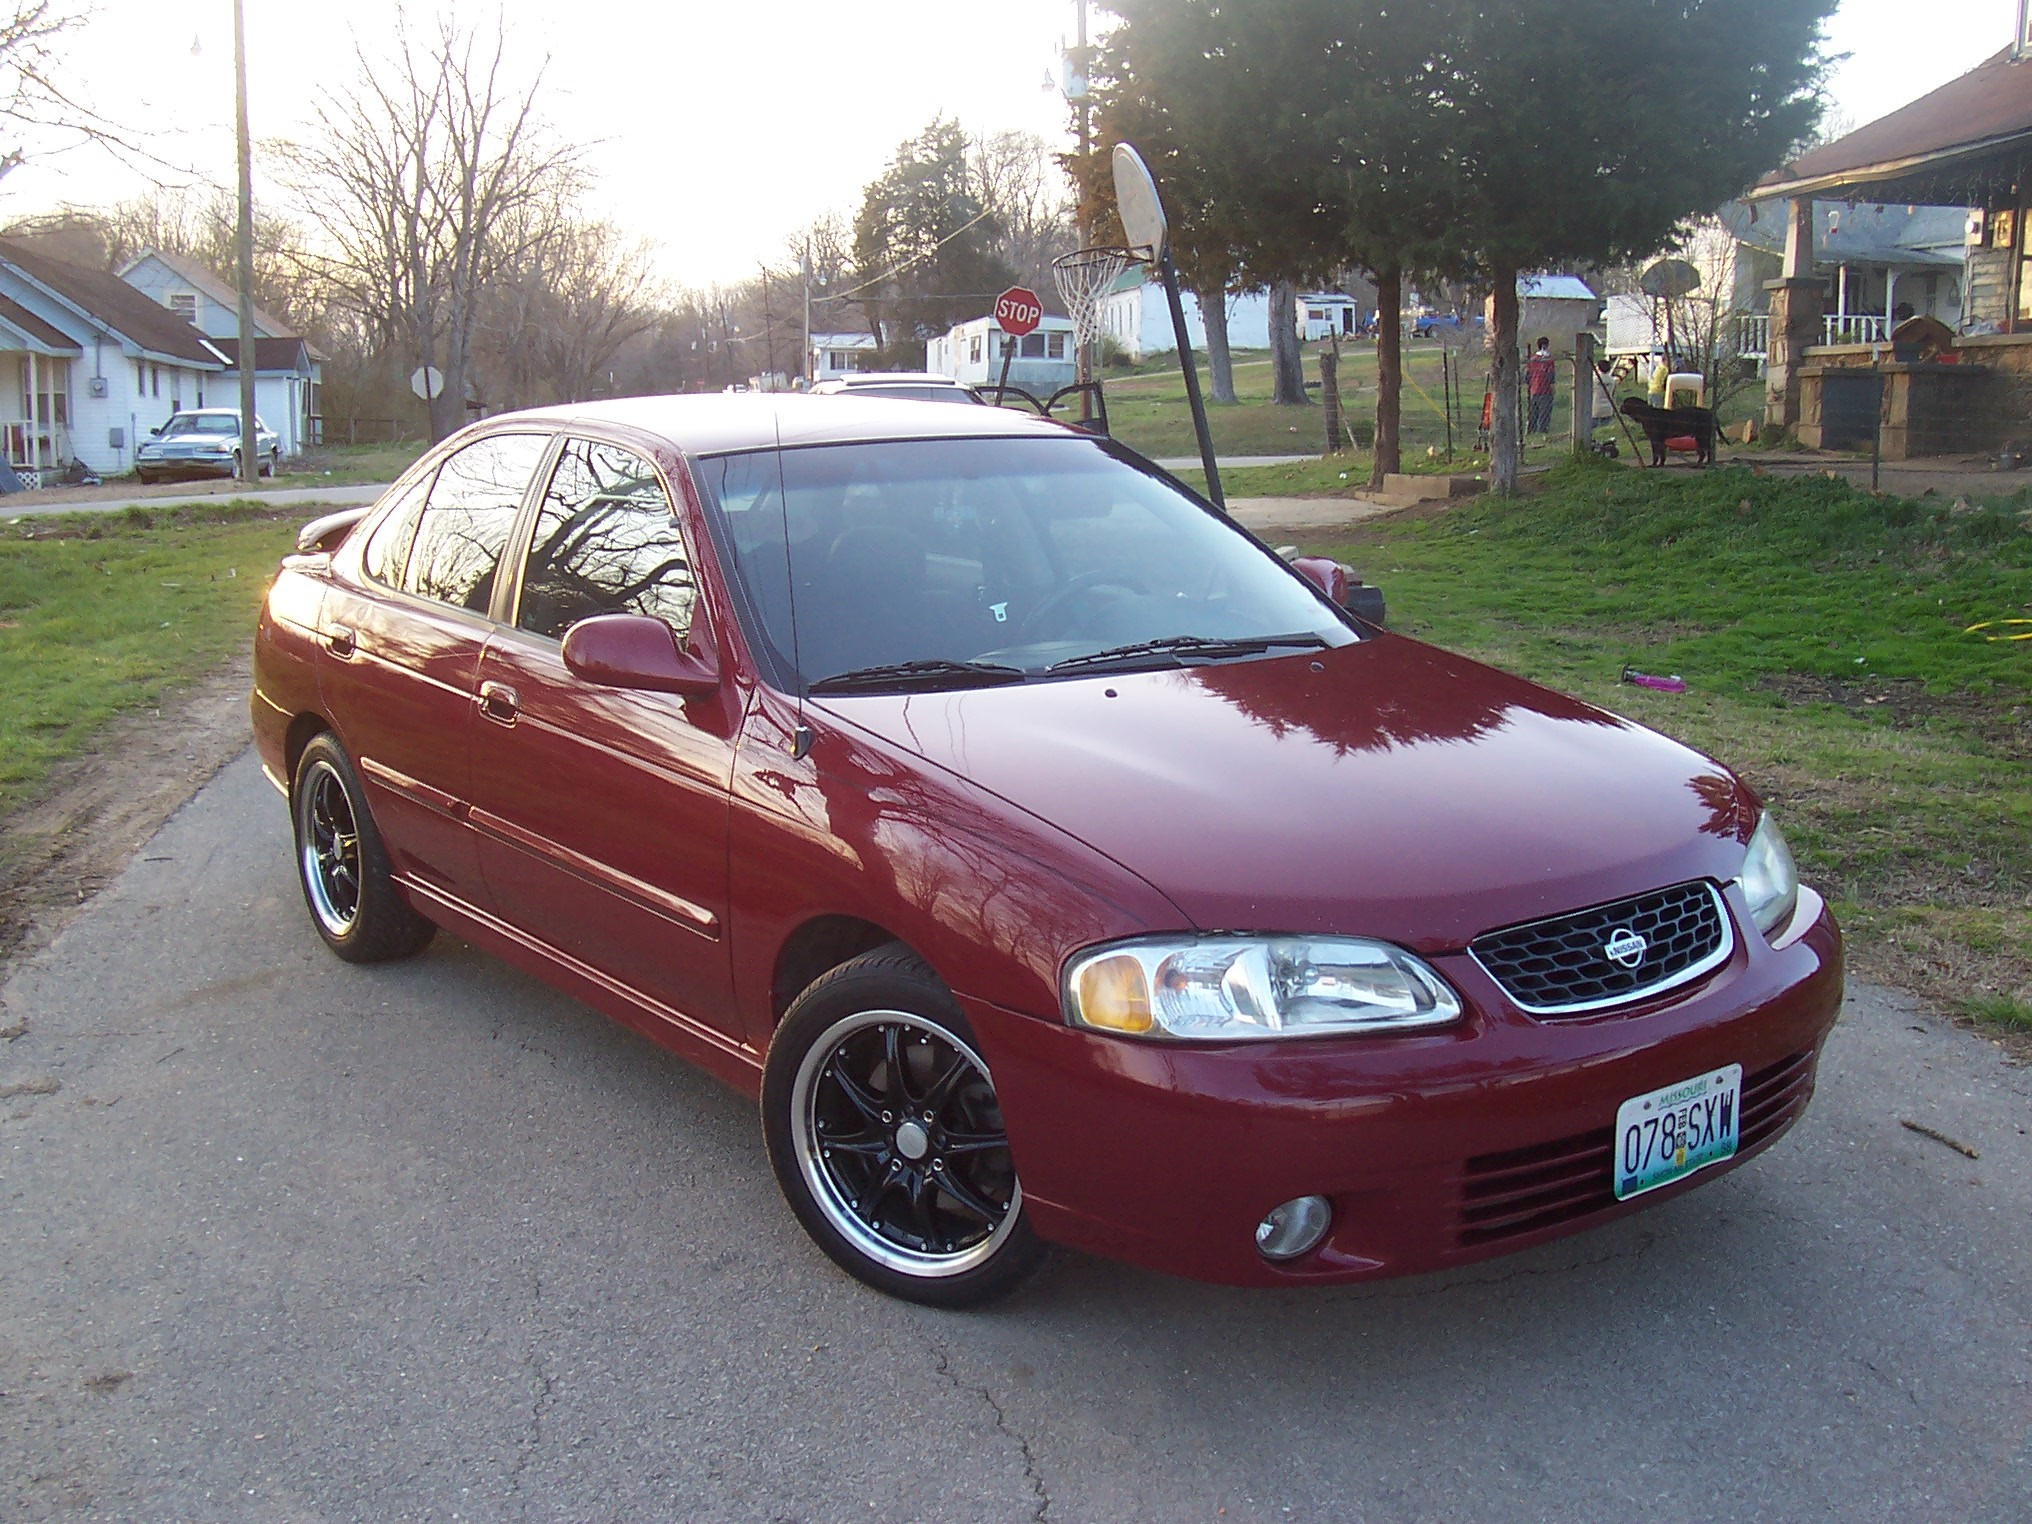 Meldaschsentra 2000 nissan sentra specs photos modification info at cardomain